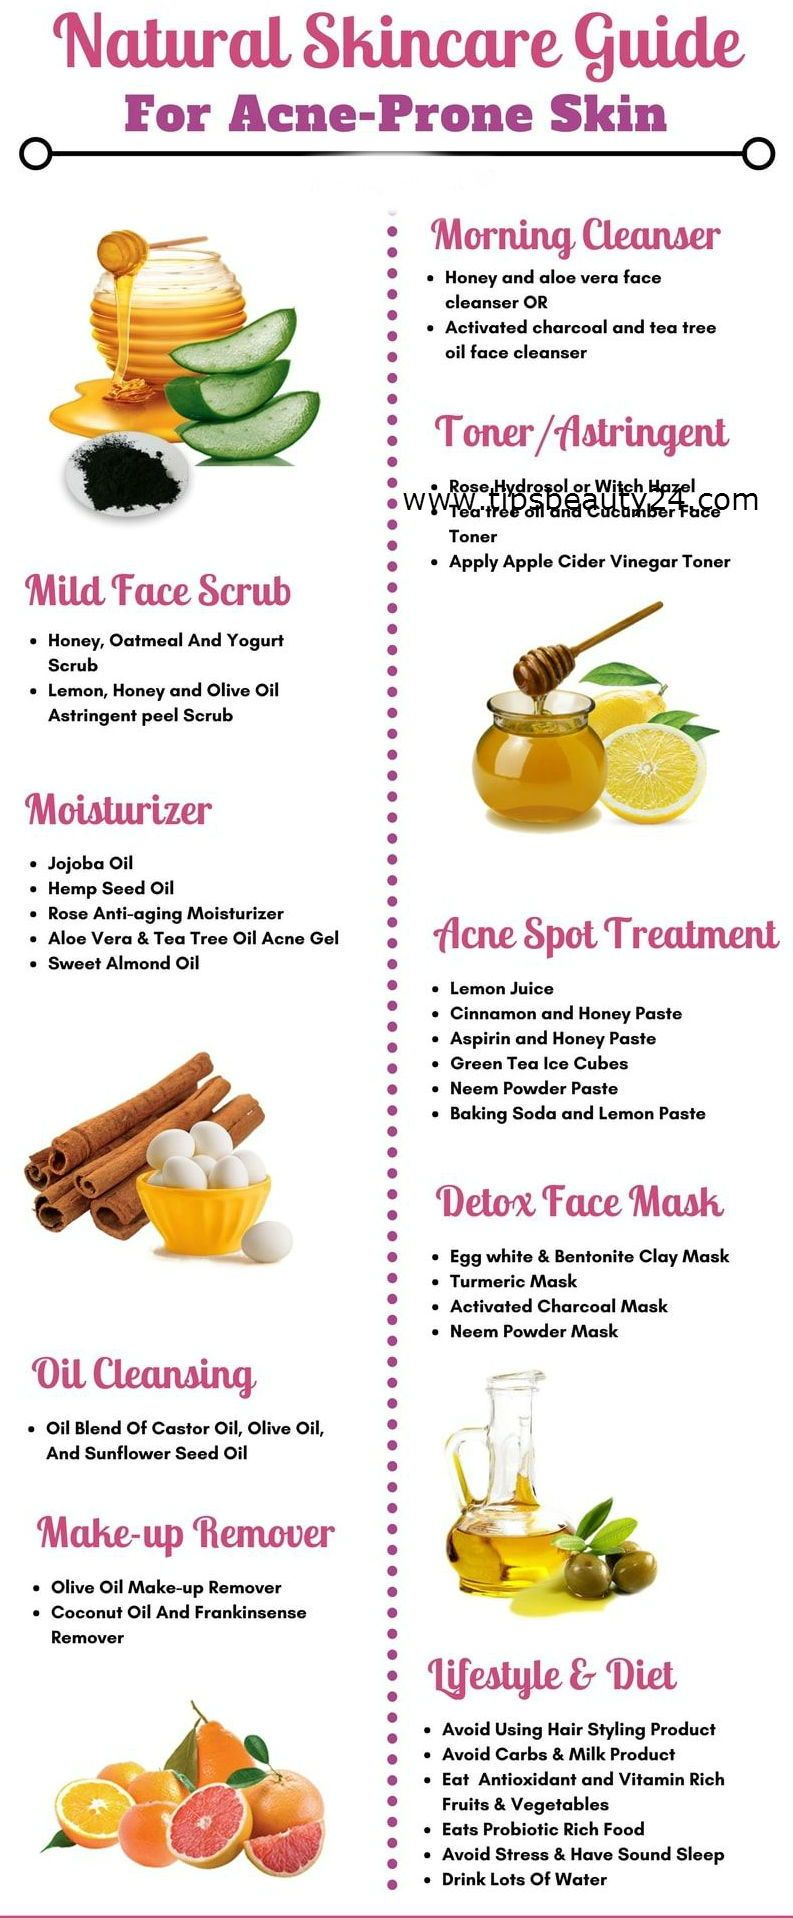 Here Are An Amazing Natural Skincare Guide For Acne Prone Skin Skincare Skincareroutine Skincarerecipes Acn Skin Care Guide Acne Prone Skin Natural Skin Care